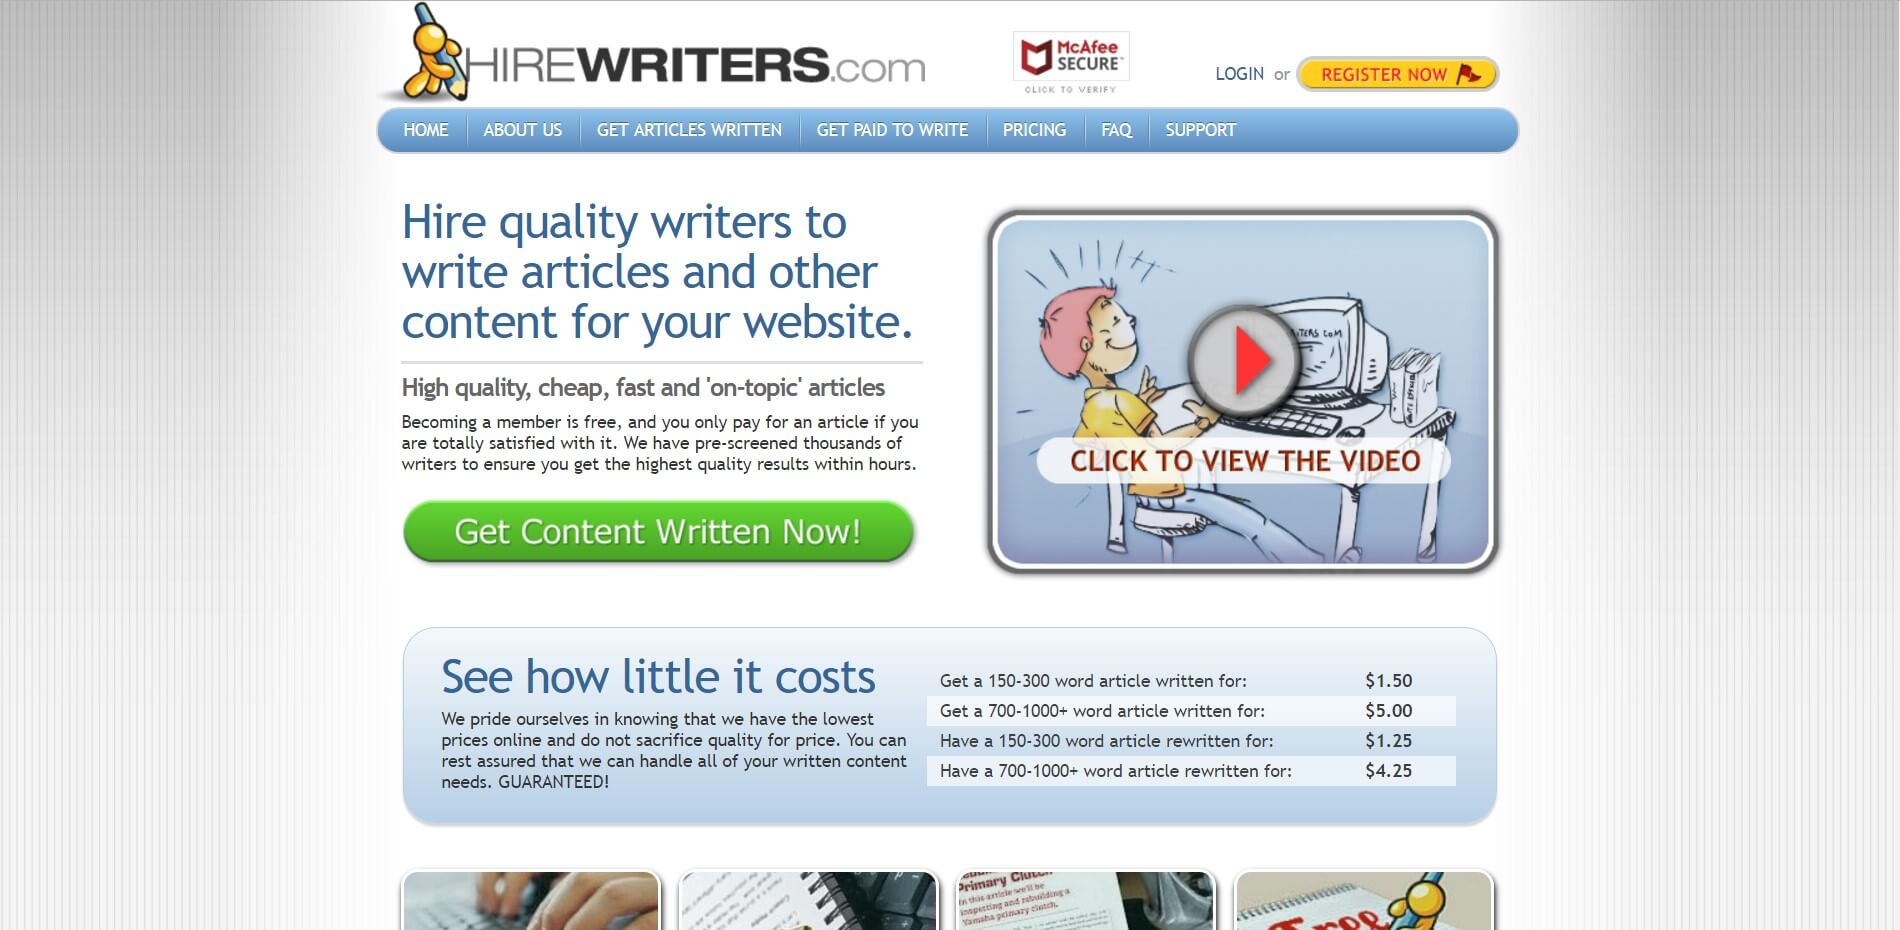 Hirewriters.com Review